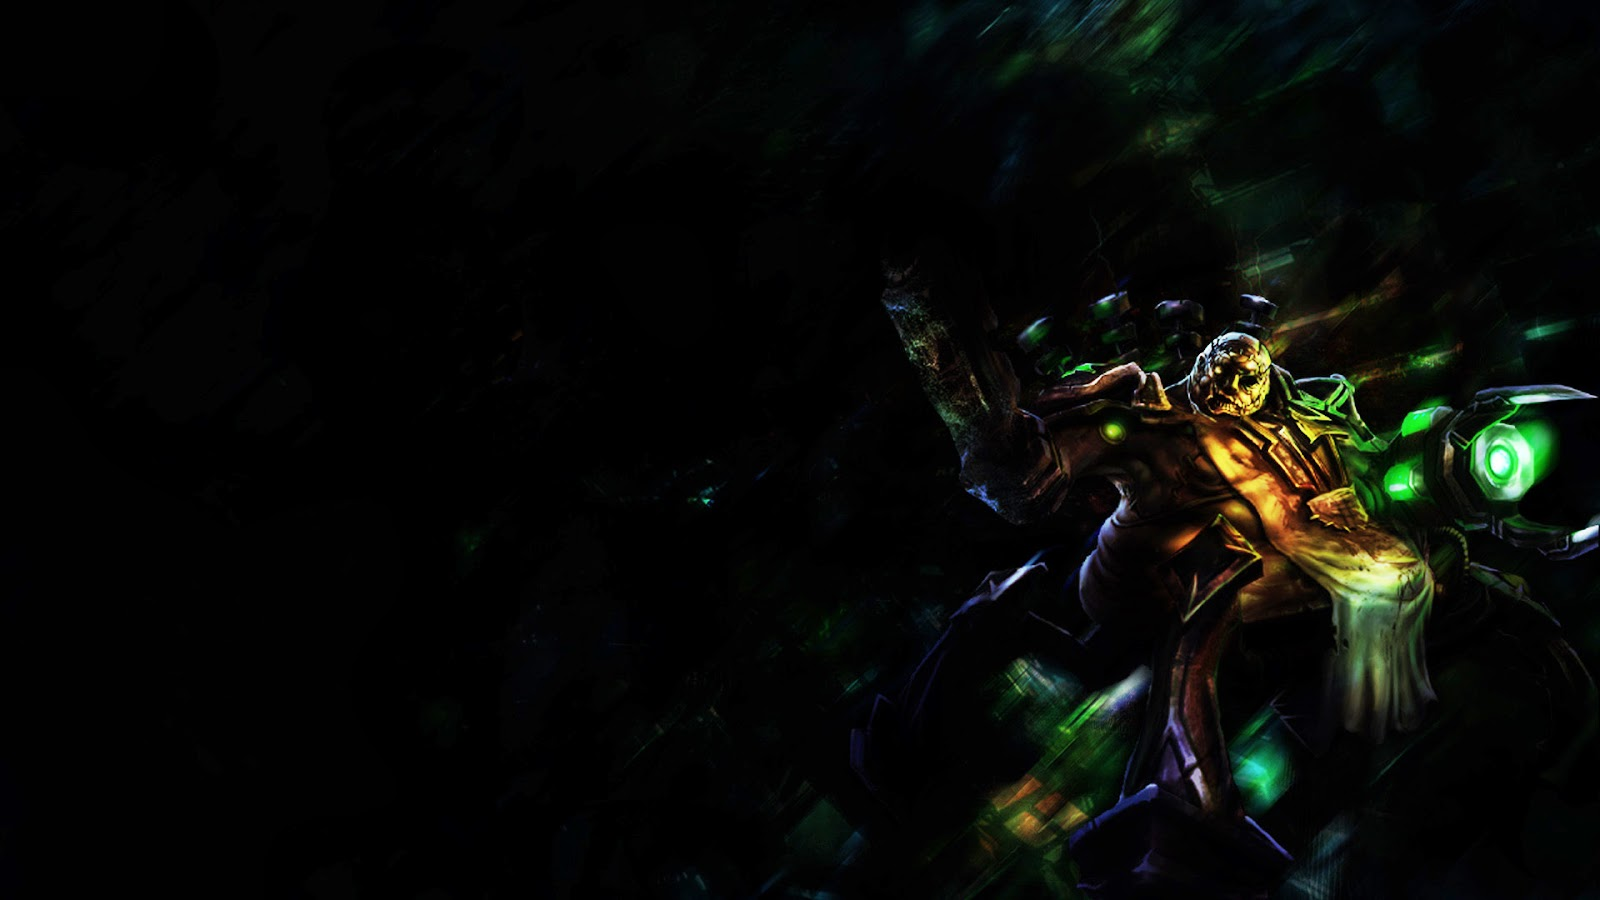 Urgot League of Legends Wallpaper